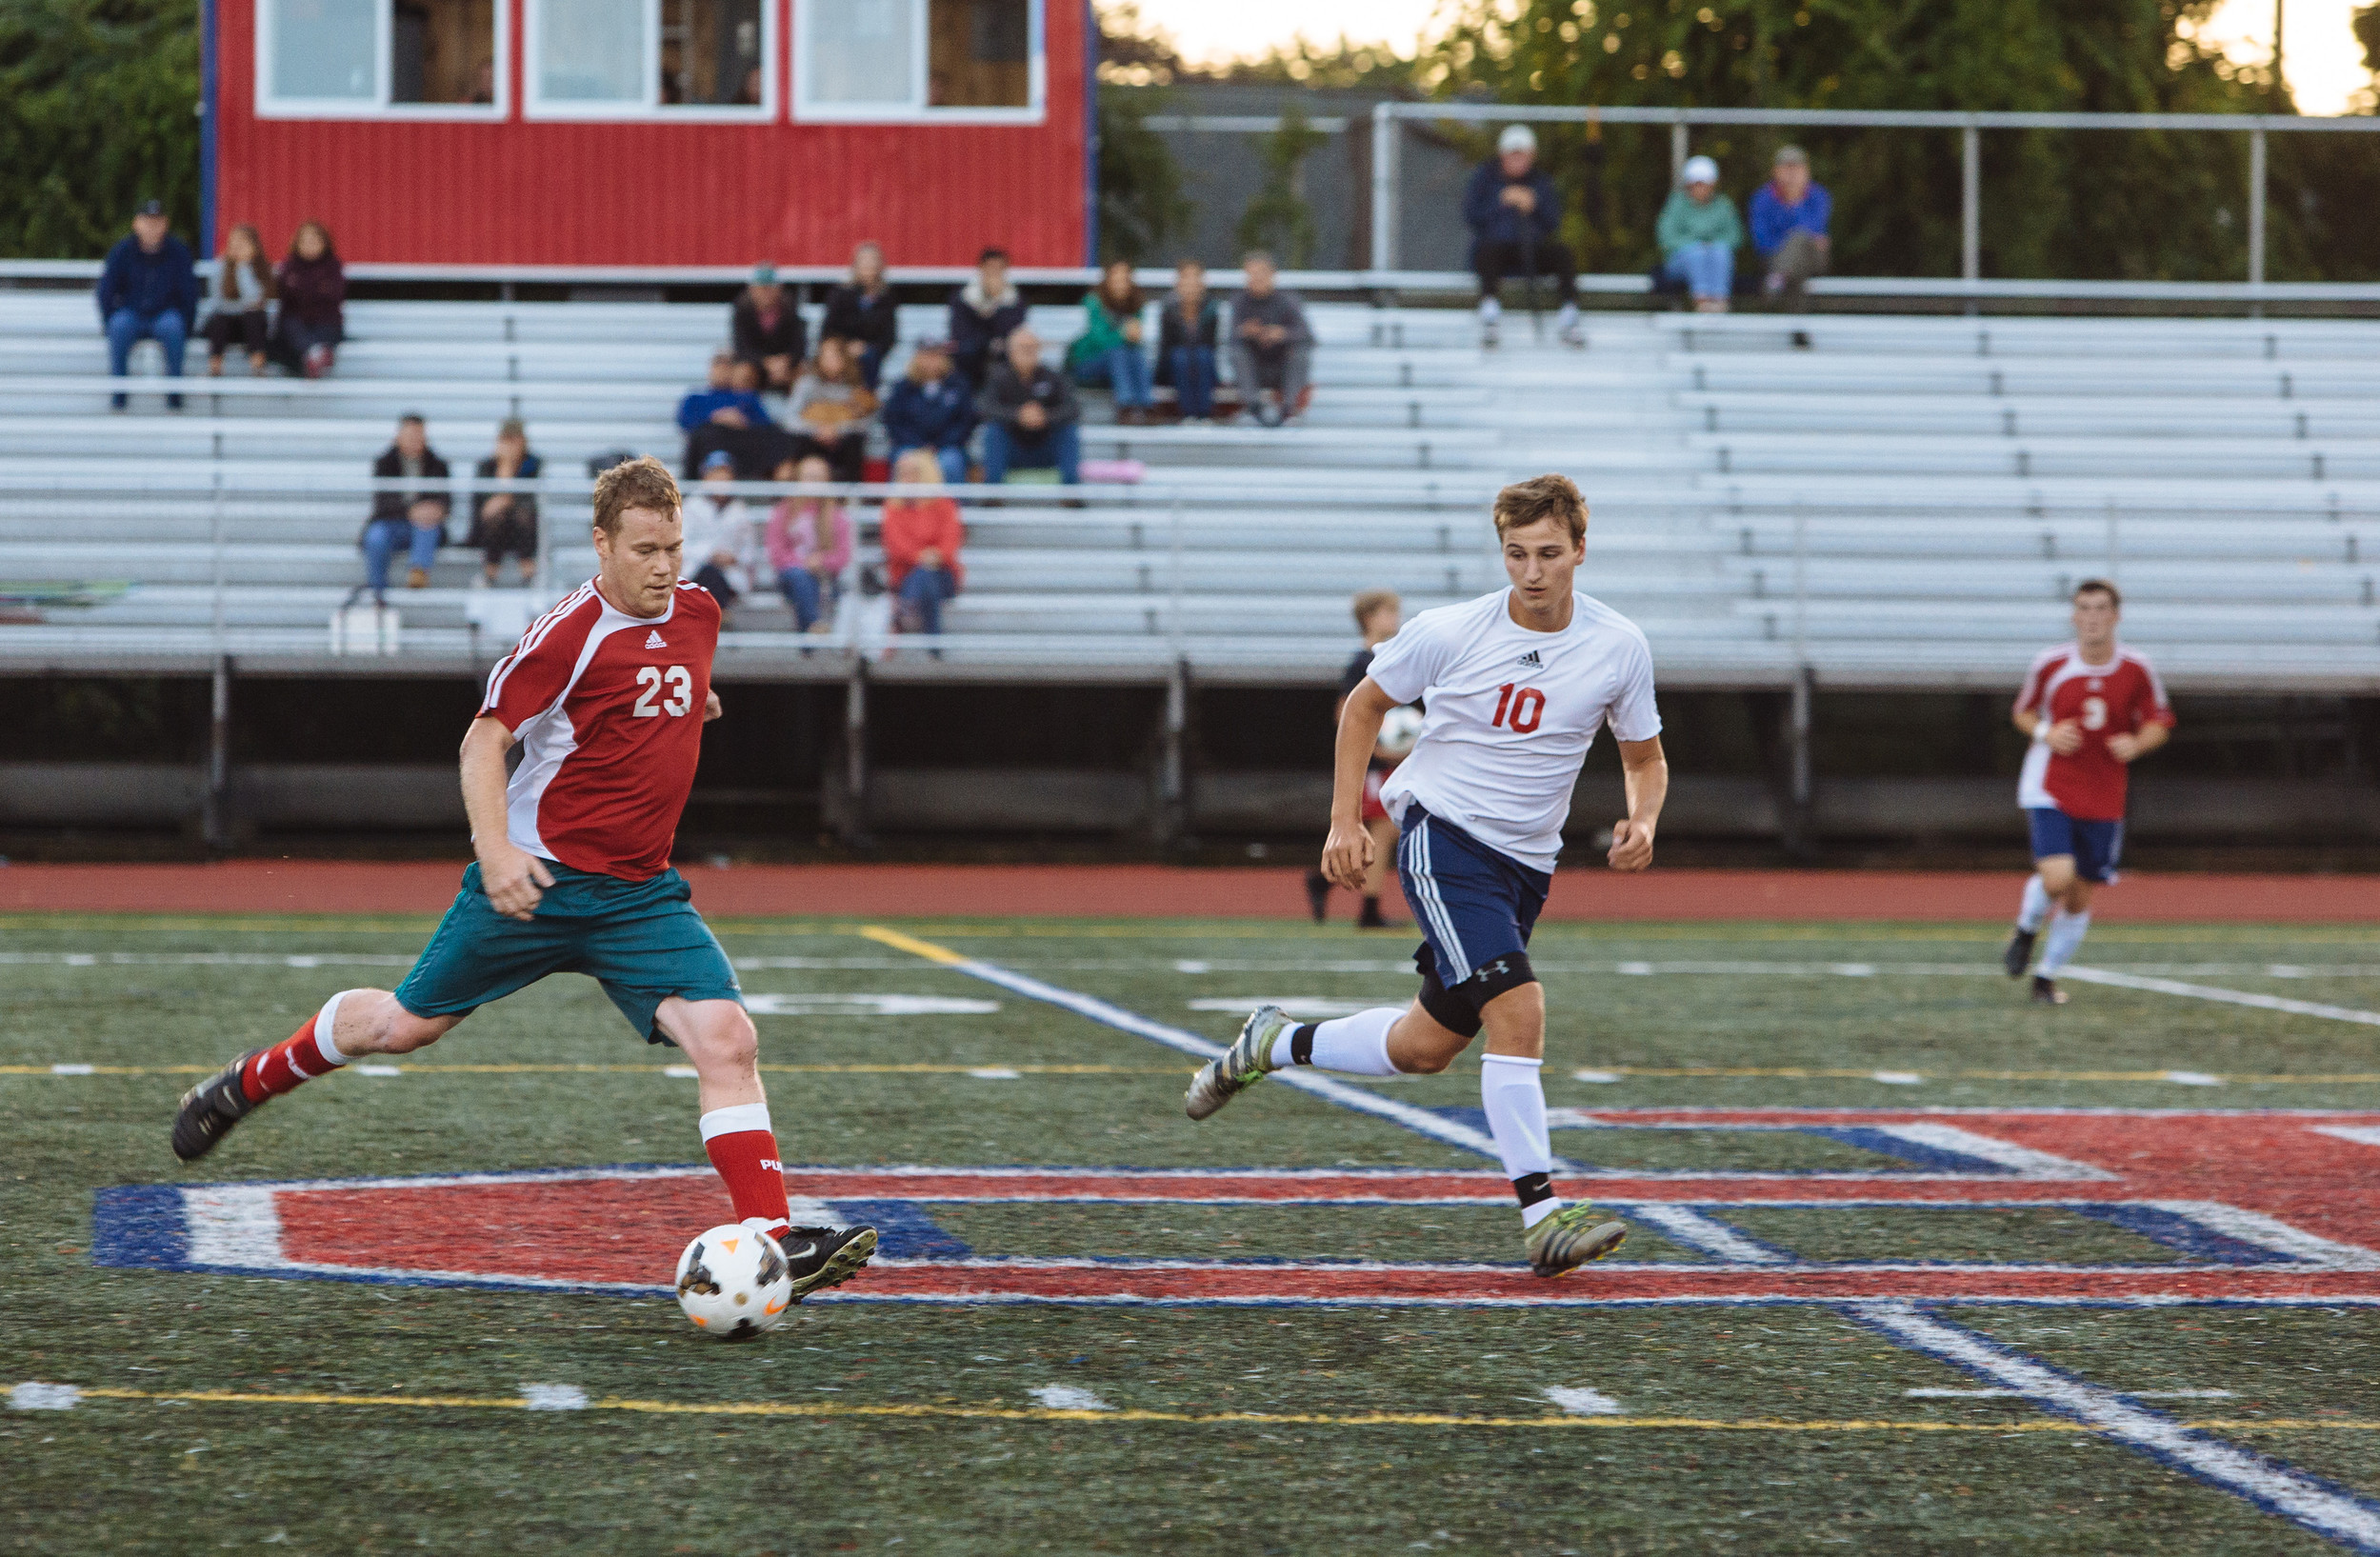 Nick Brown of the alumni team moves the ball downfield while being defended by PHS senior Andrew Maiato.